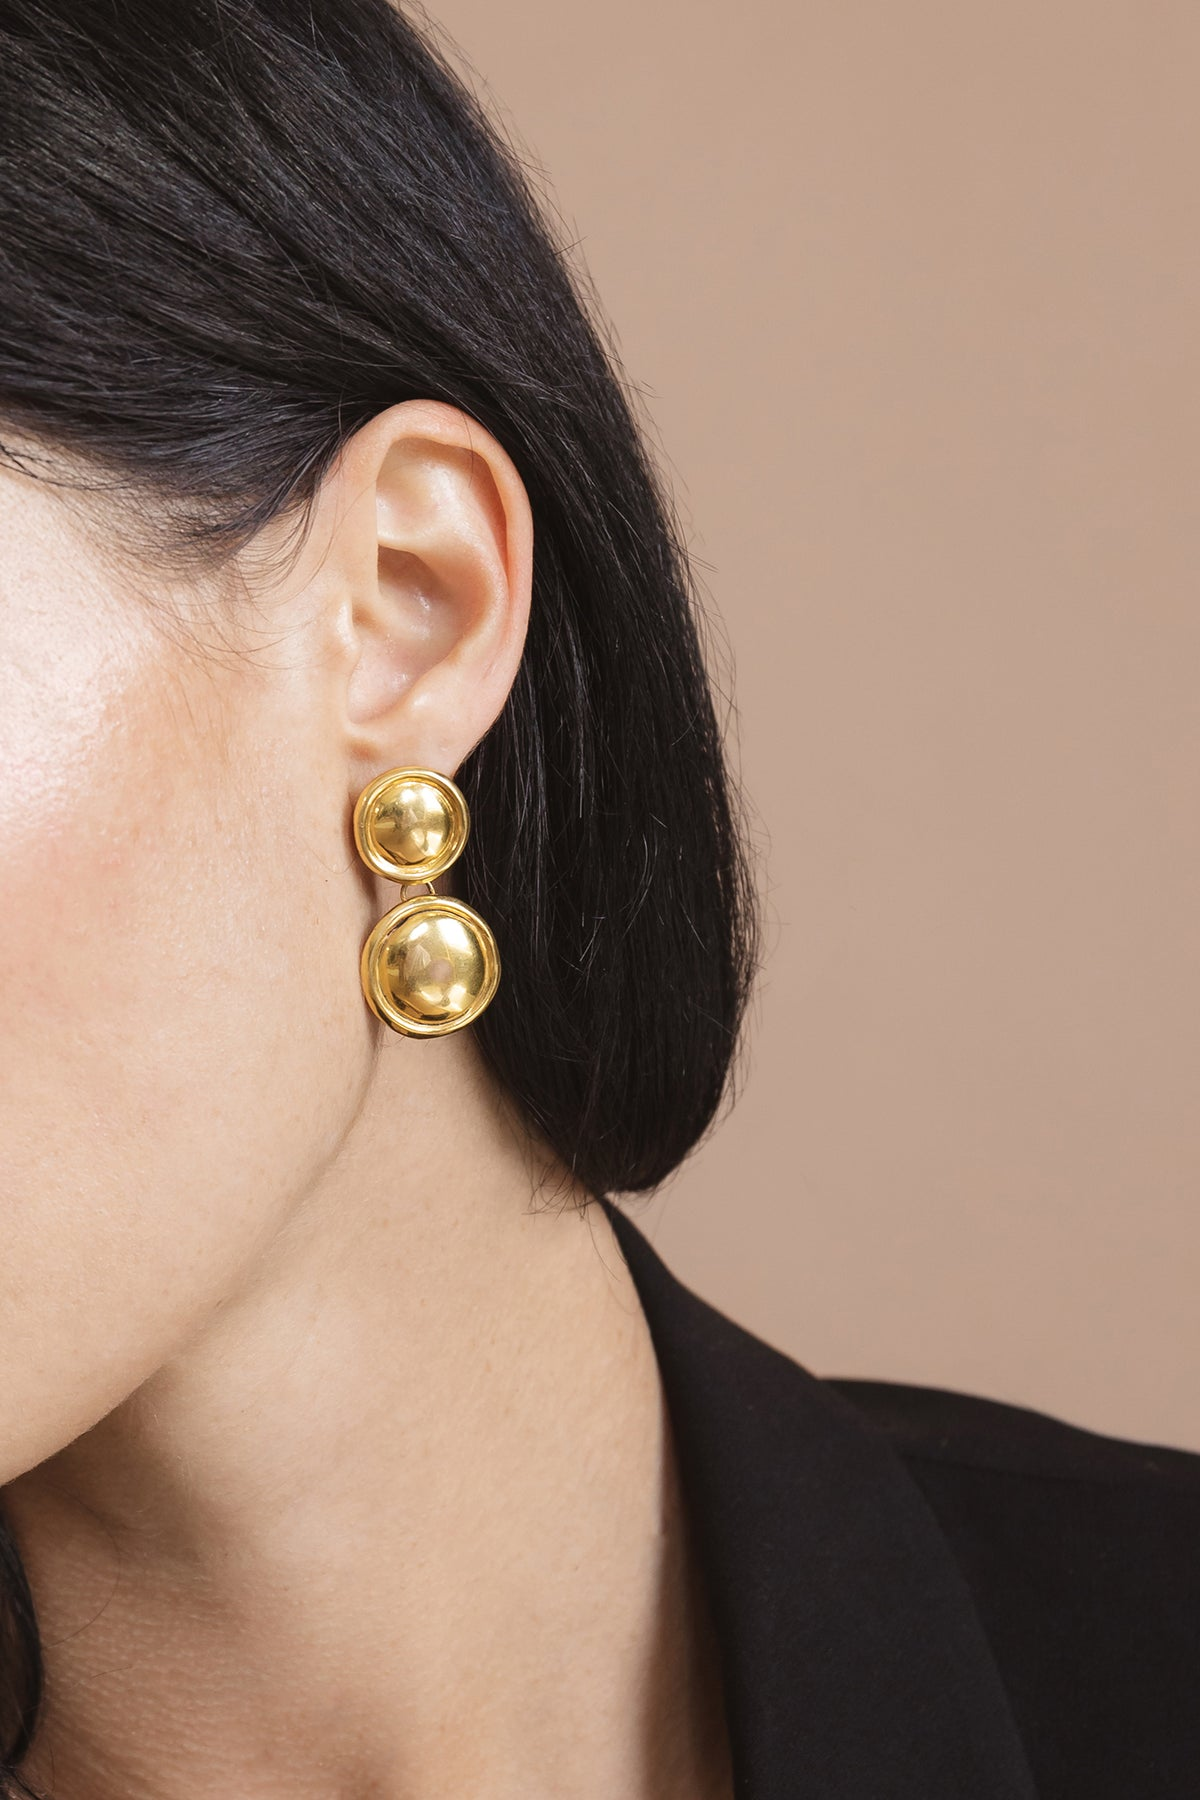 Flash jewellery Double dome earring in gold available on Maker's Mrkt Makers Market melbourne